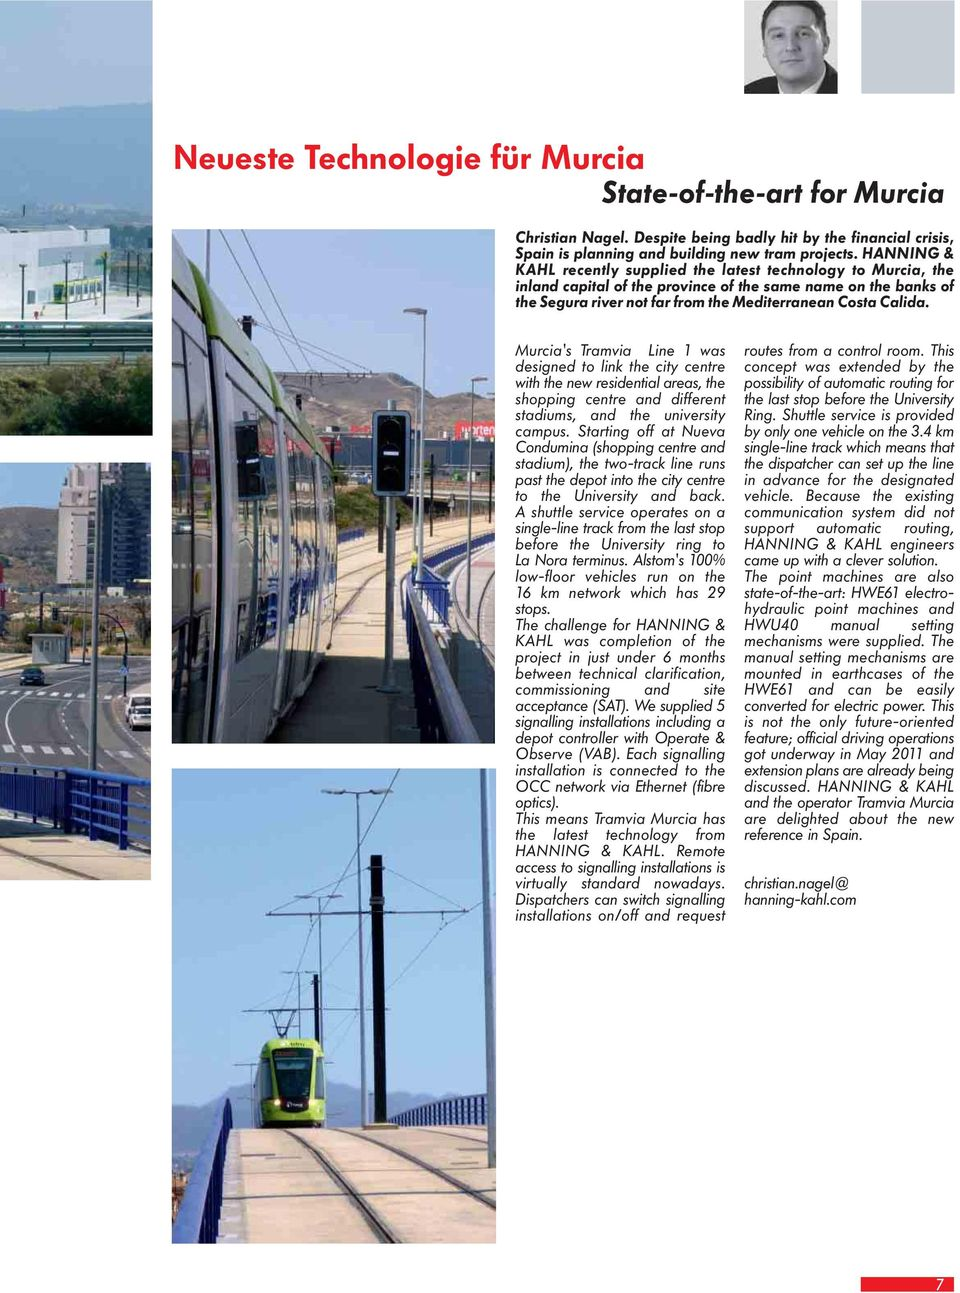 Murcia's Tramvia Line 1 was designed to link the city centre with the new residential areas, the shopping centre and different stadiums, and the university campus.